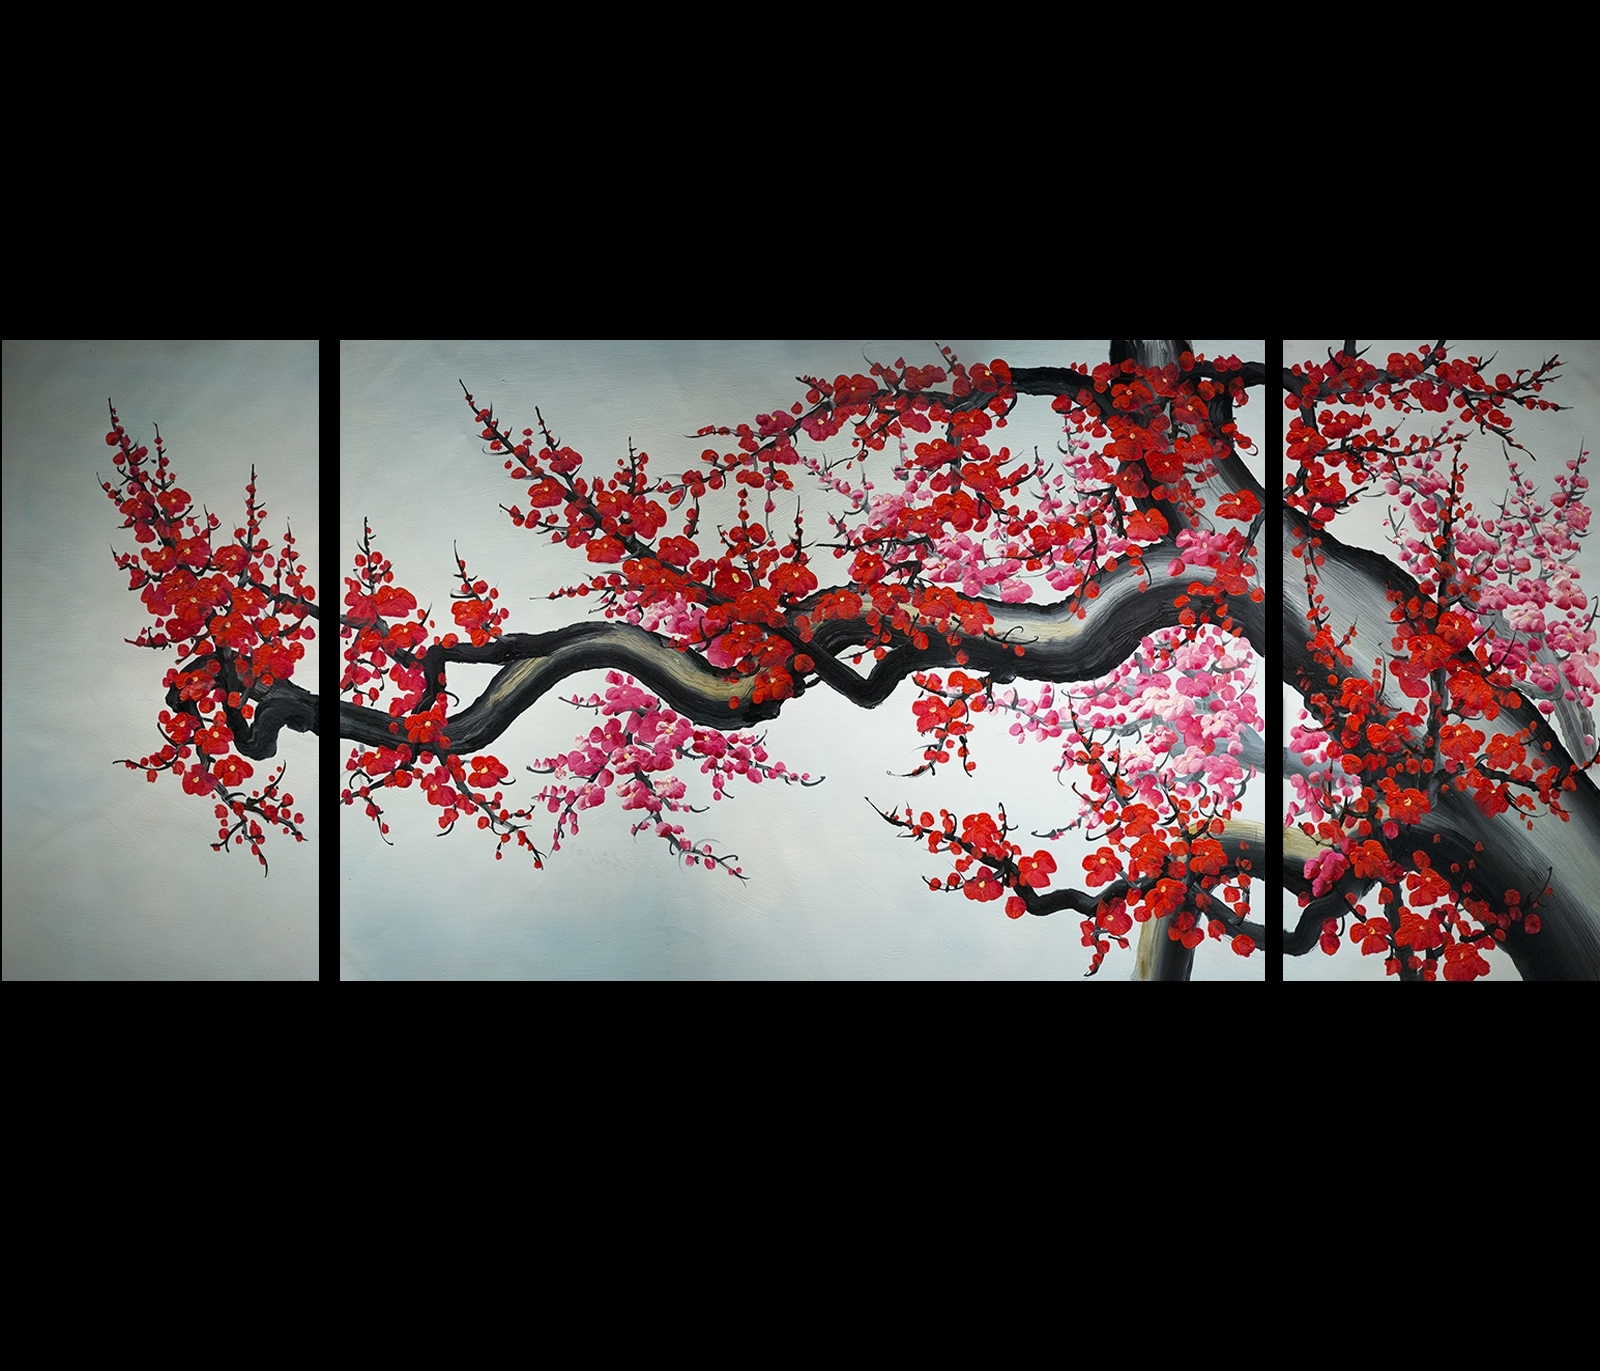 Wall Art Modern Abstract Painting Framed Cherry Blossom Pertaining To Newest Abstract Cherry Blossom Wall Art (View 5 of 20)